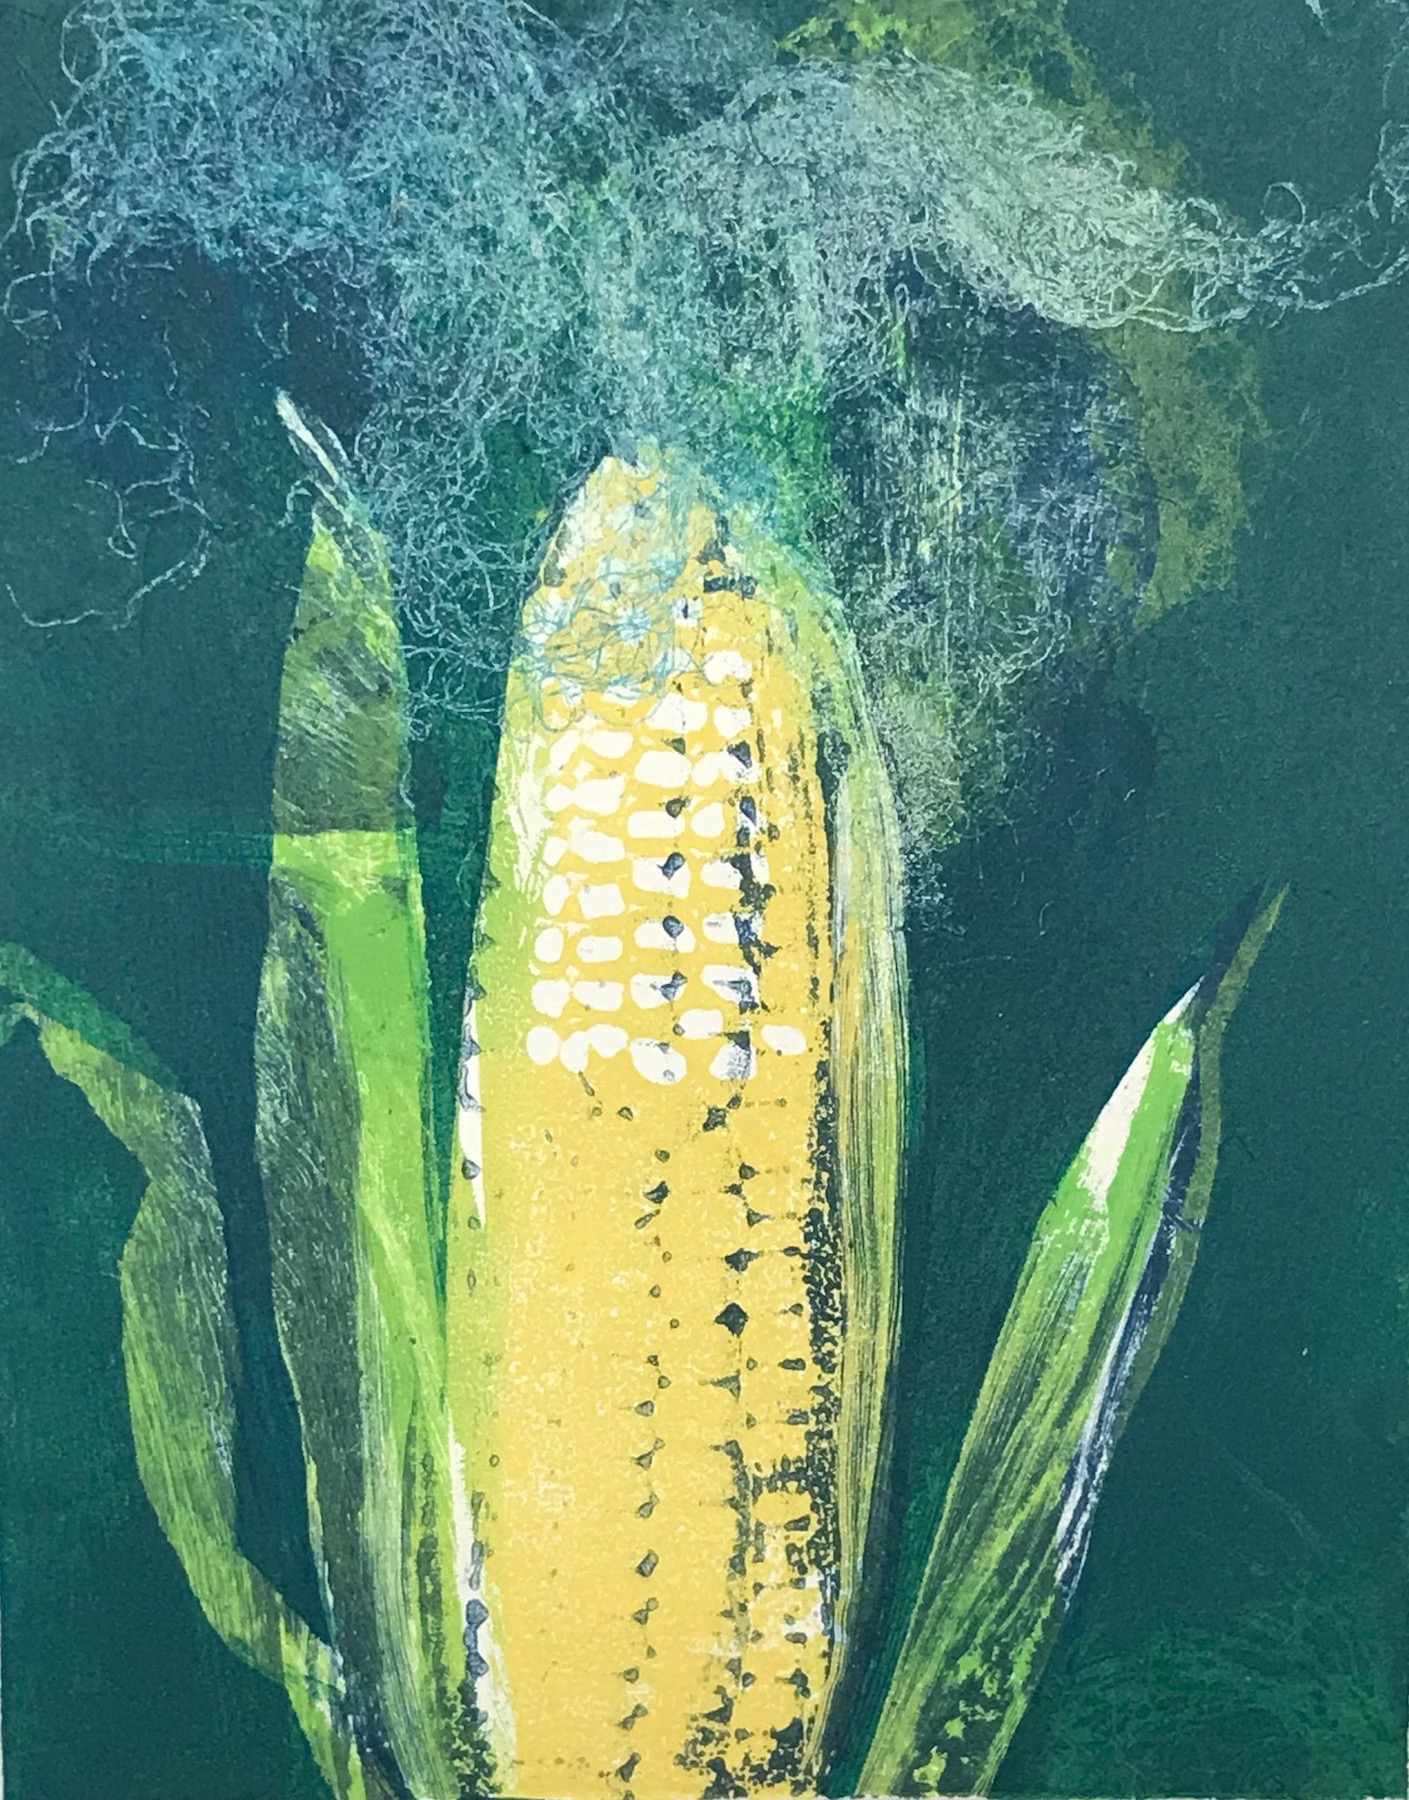 """Corn II"", monoprint, 10"" x 8"", $150 (unframed)"